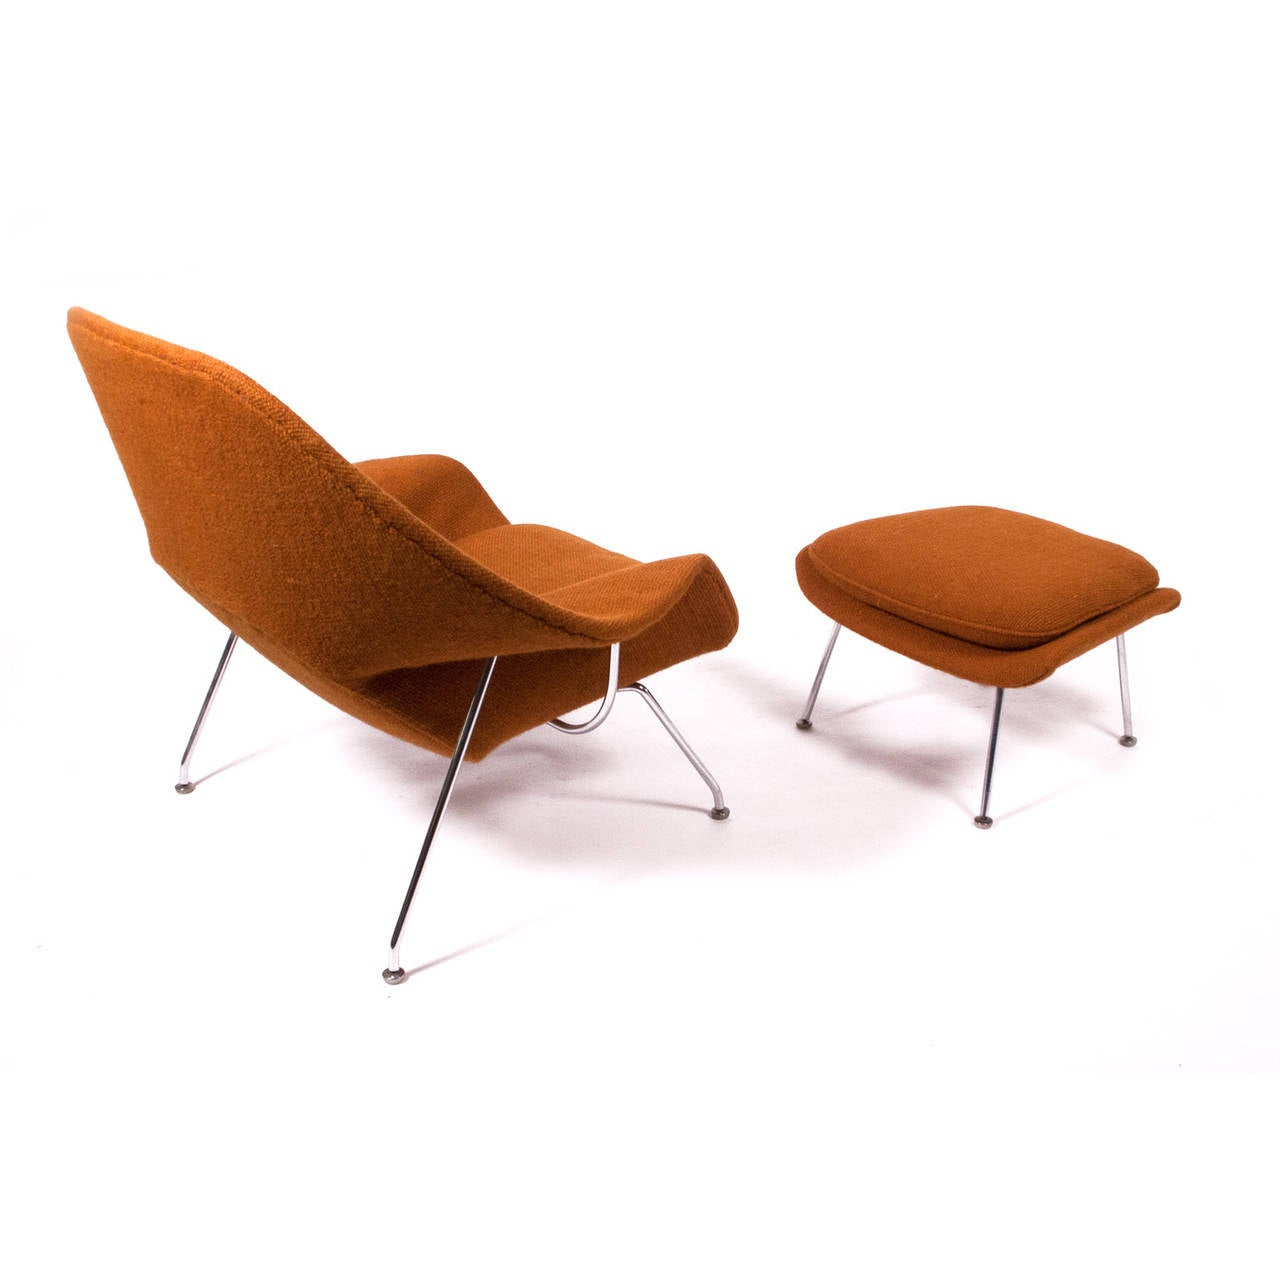 1971 production by Knoll Associates in original Knoll tweed on chrome frame. Retains label with  sc 1 st  1stDibs & 70 Womb Chair and Ottoman by Eero Saarinen at 1stdibs